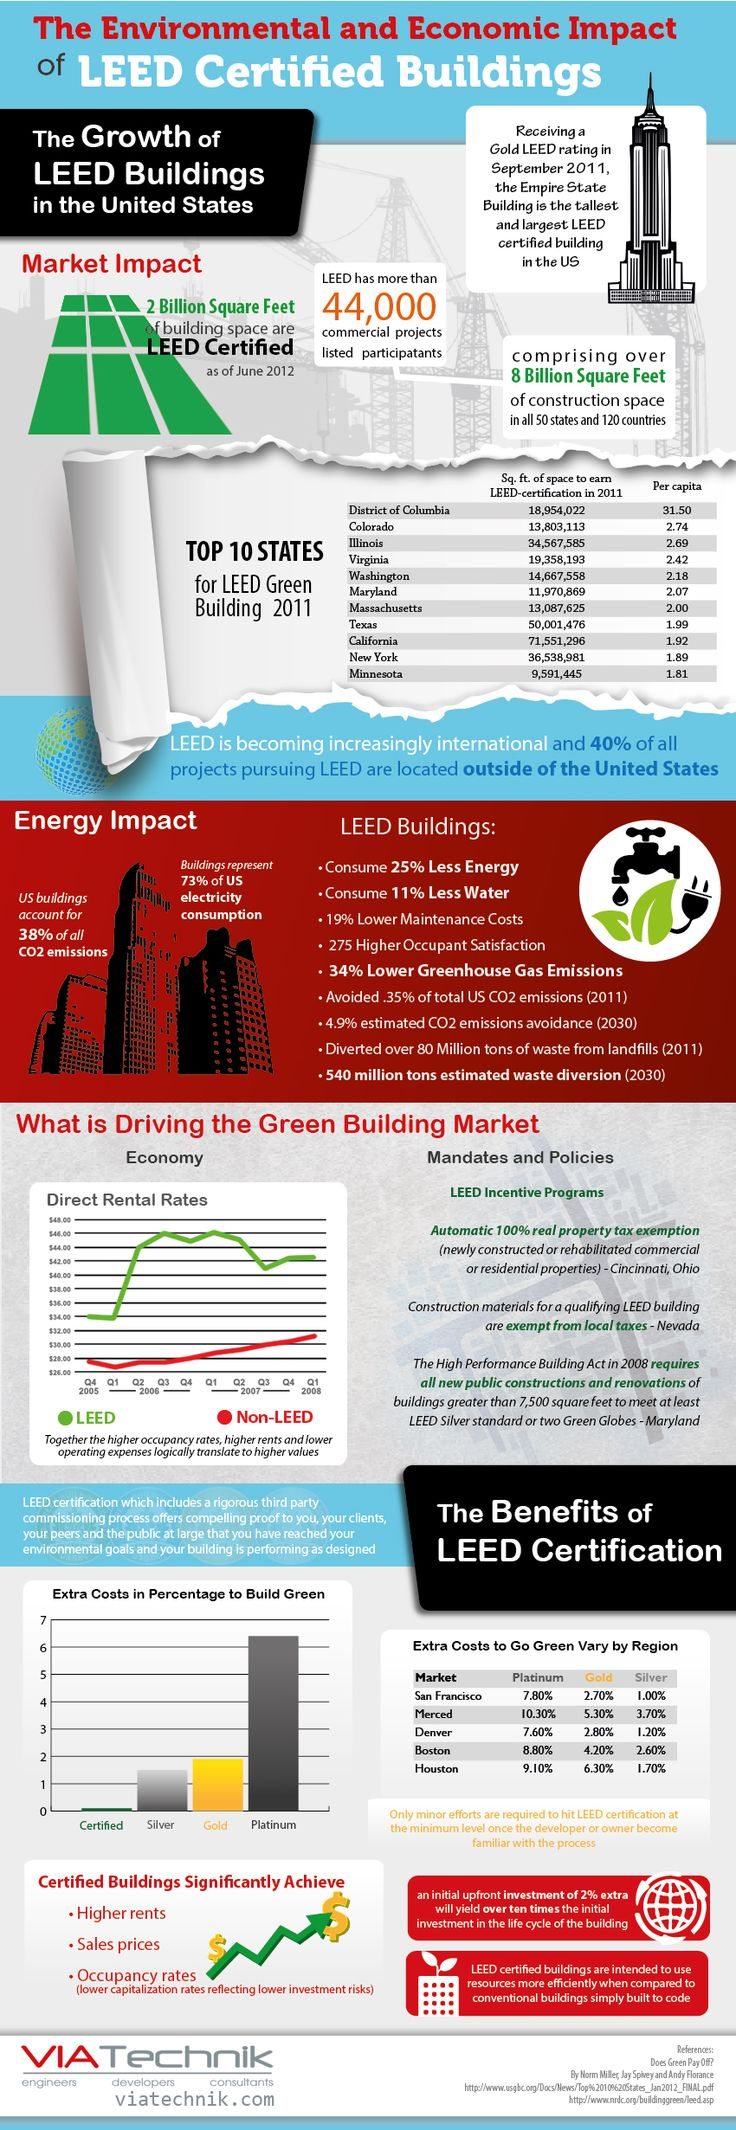 This is an image of the importance of having a LEED certified building. If your building is LEED certified, then that means your building is cause less damage to our environment and is considered environmentally friendly.